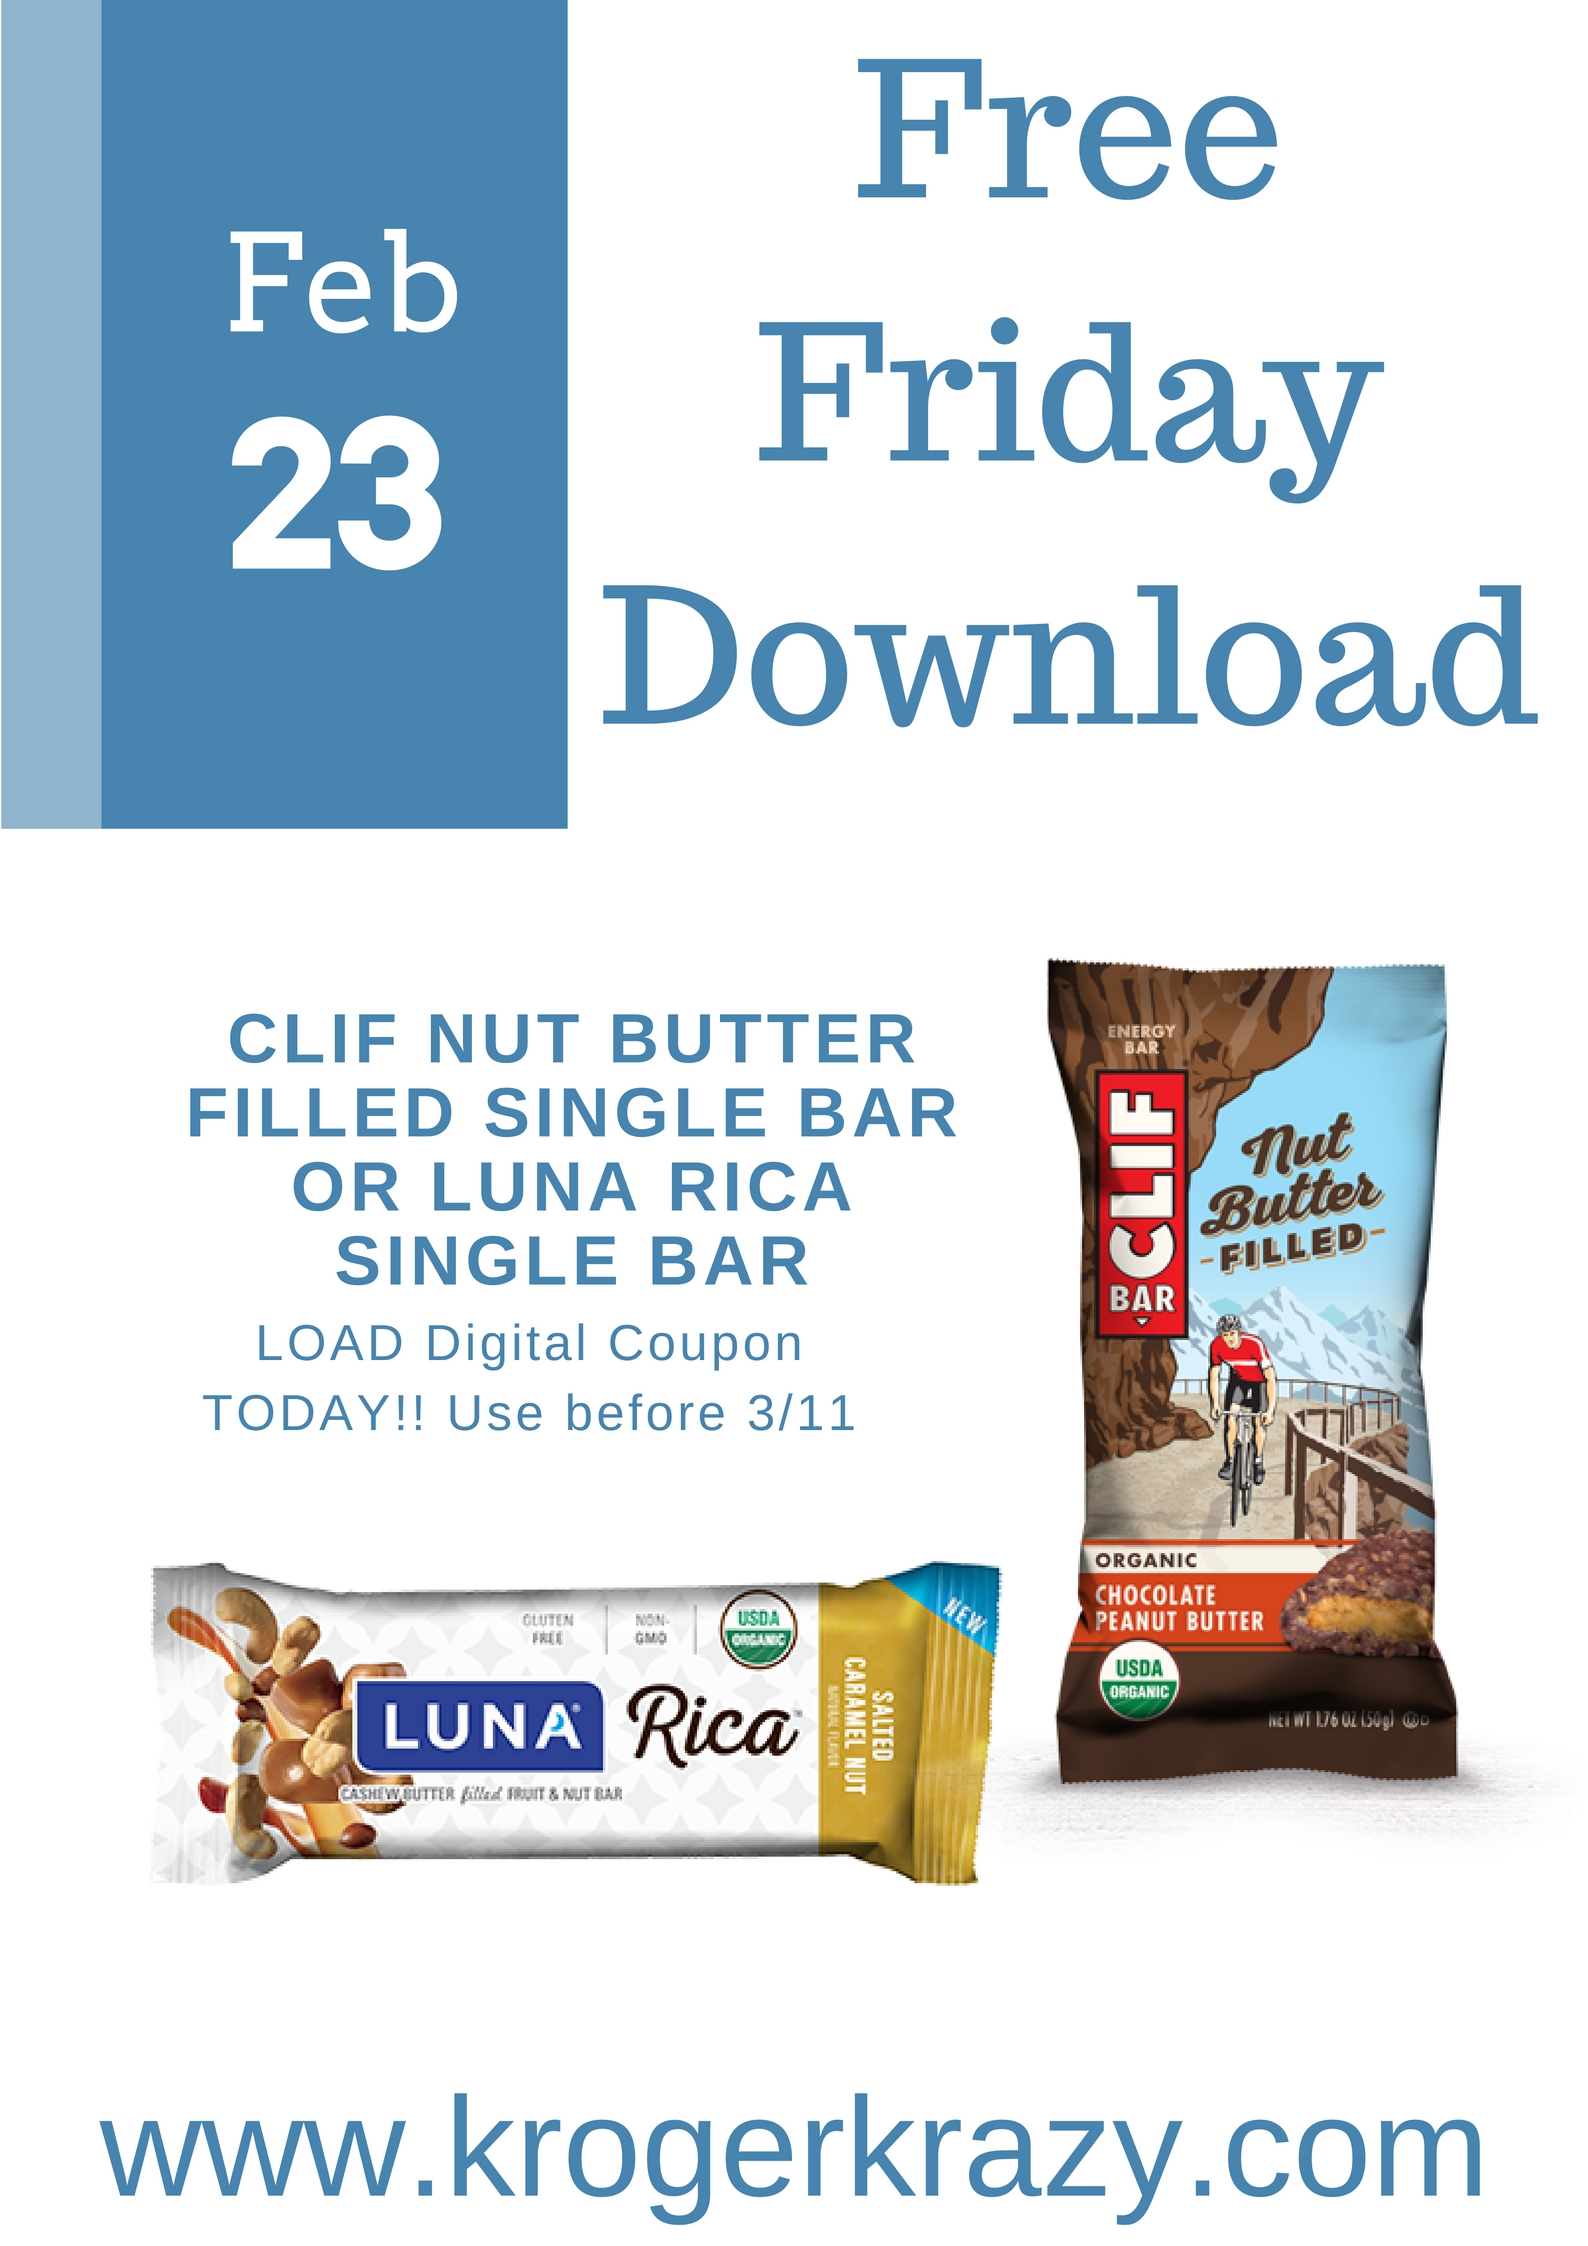 picture about Clif Bar Printable Coupon identified as Cost-free Friday Down load Clif Nut Butter Stuffed Solitary Bar OR